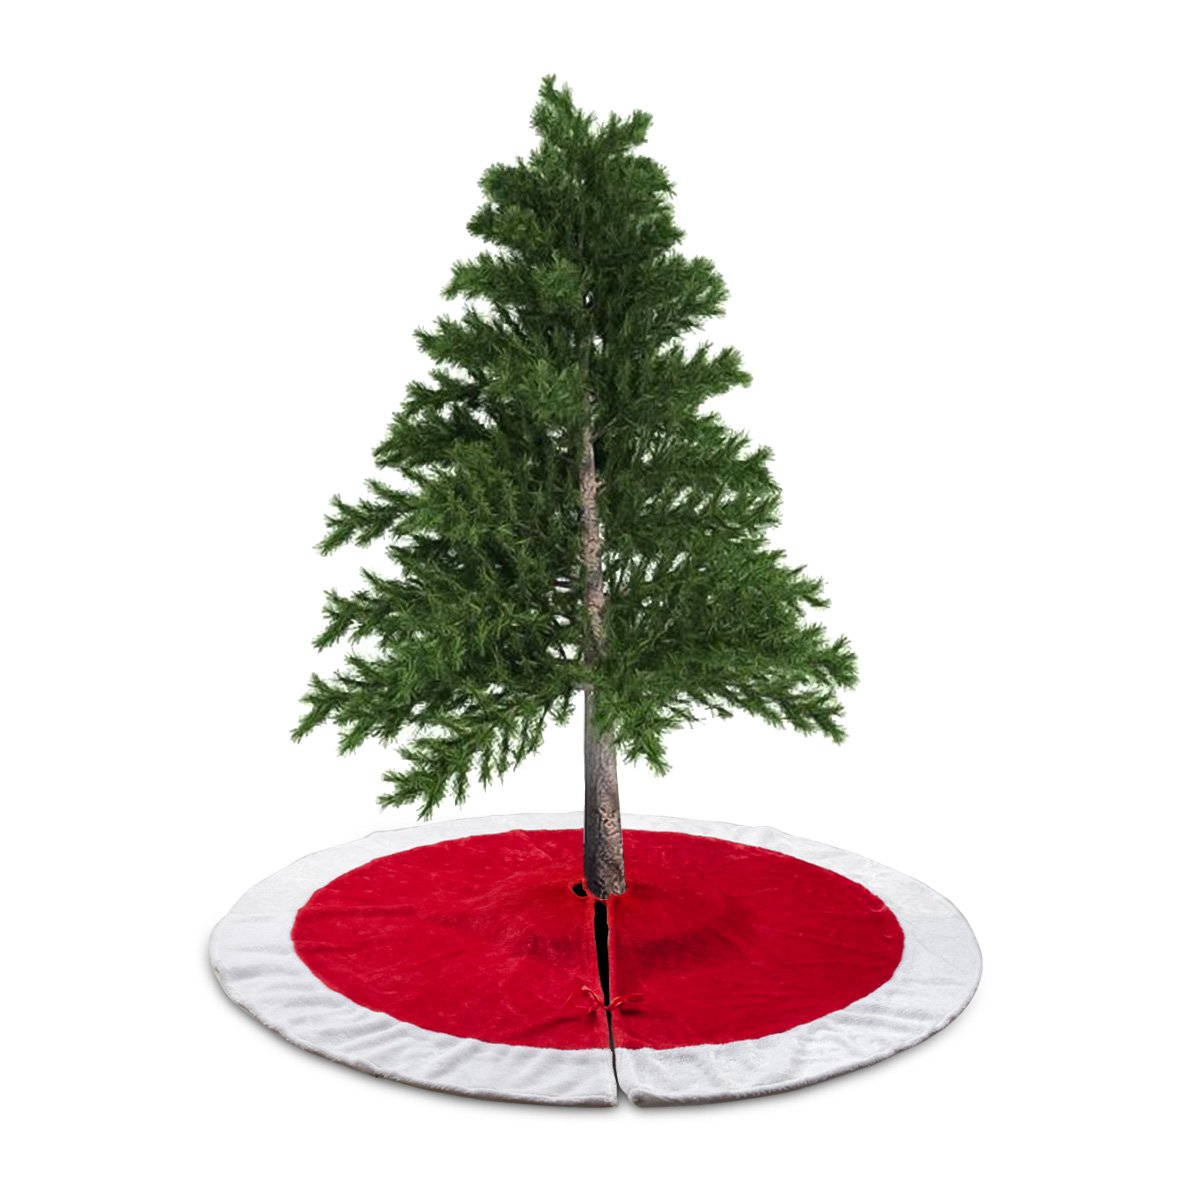 D-FantiX 48 Inch Traditional Velvet Christmas Tree Skirt Red and White Holiday Christmas Decorations Large AM-HG162